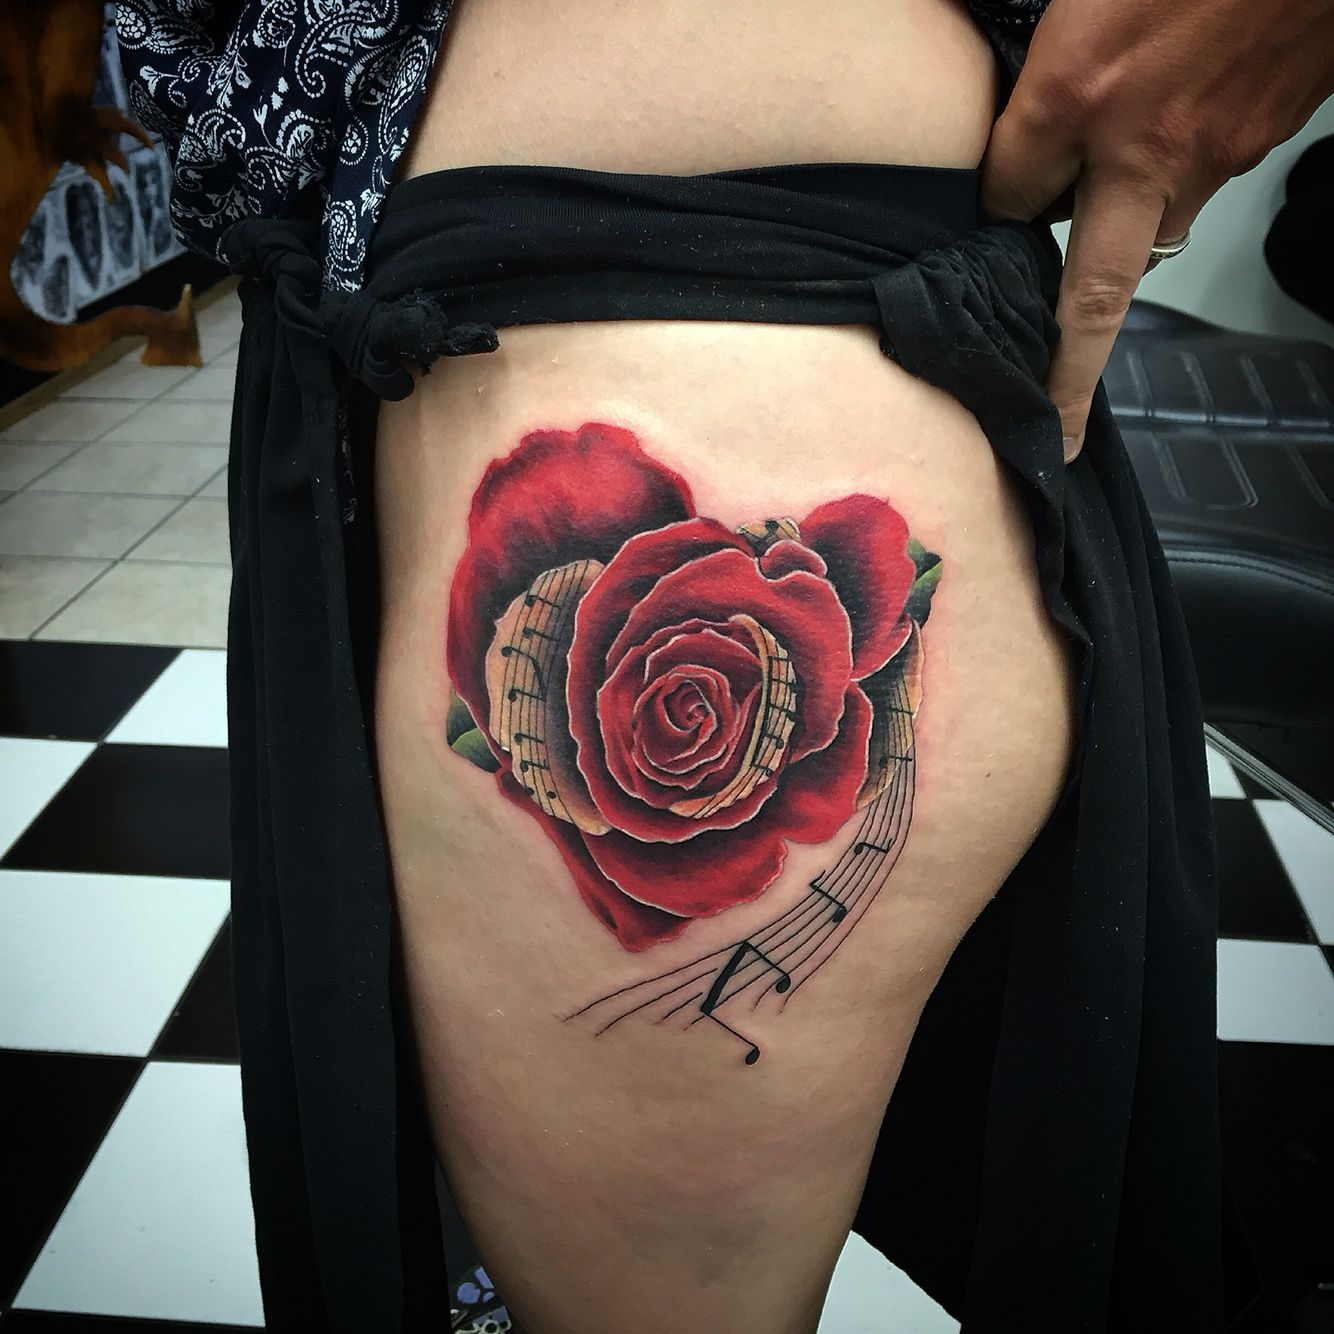 Rose music morf tattoo. Had fun doing this one